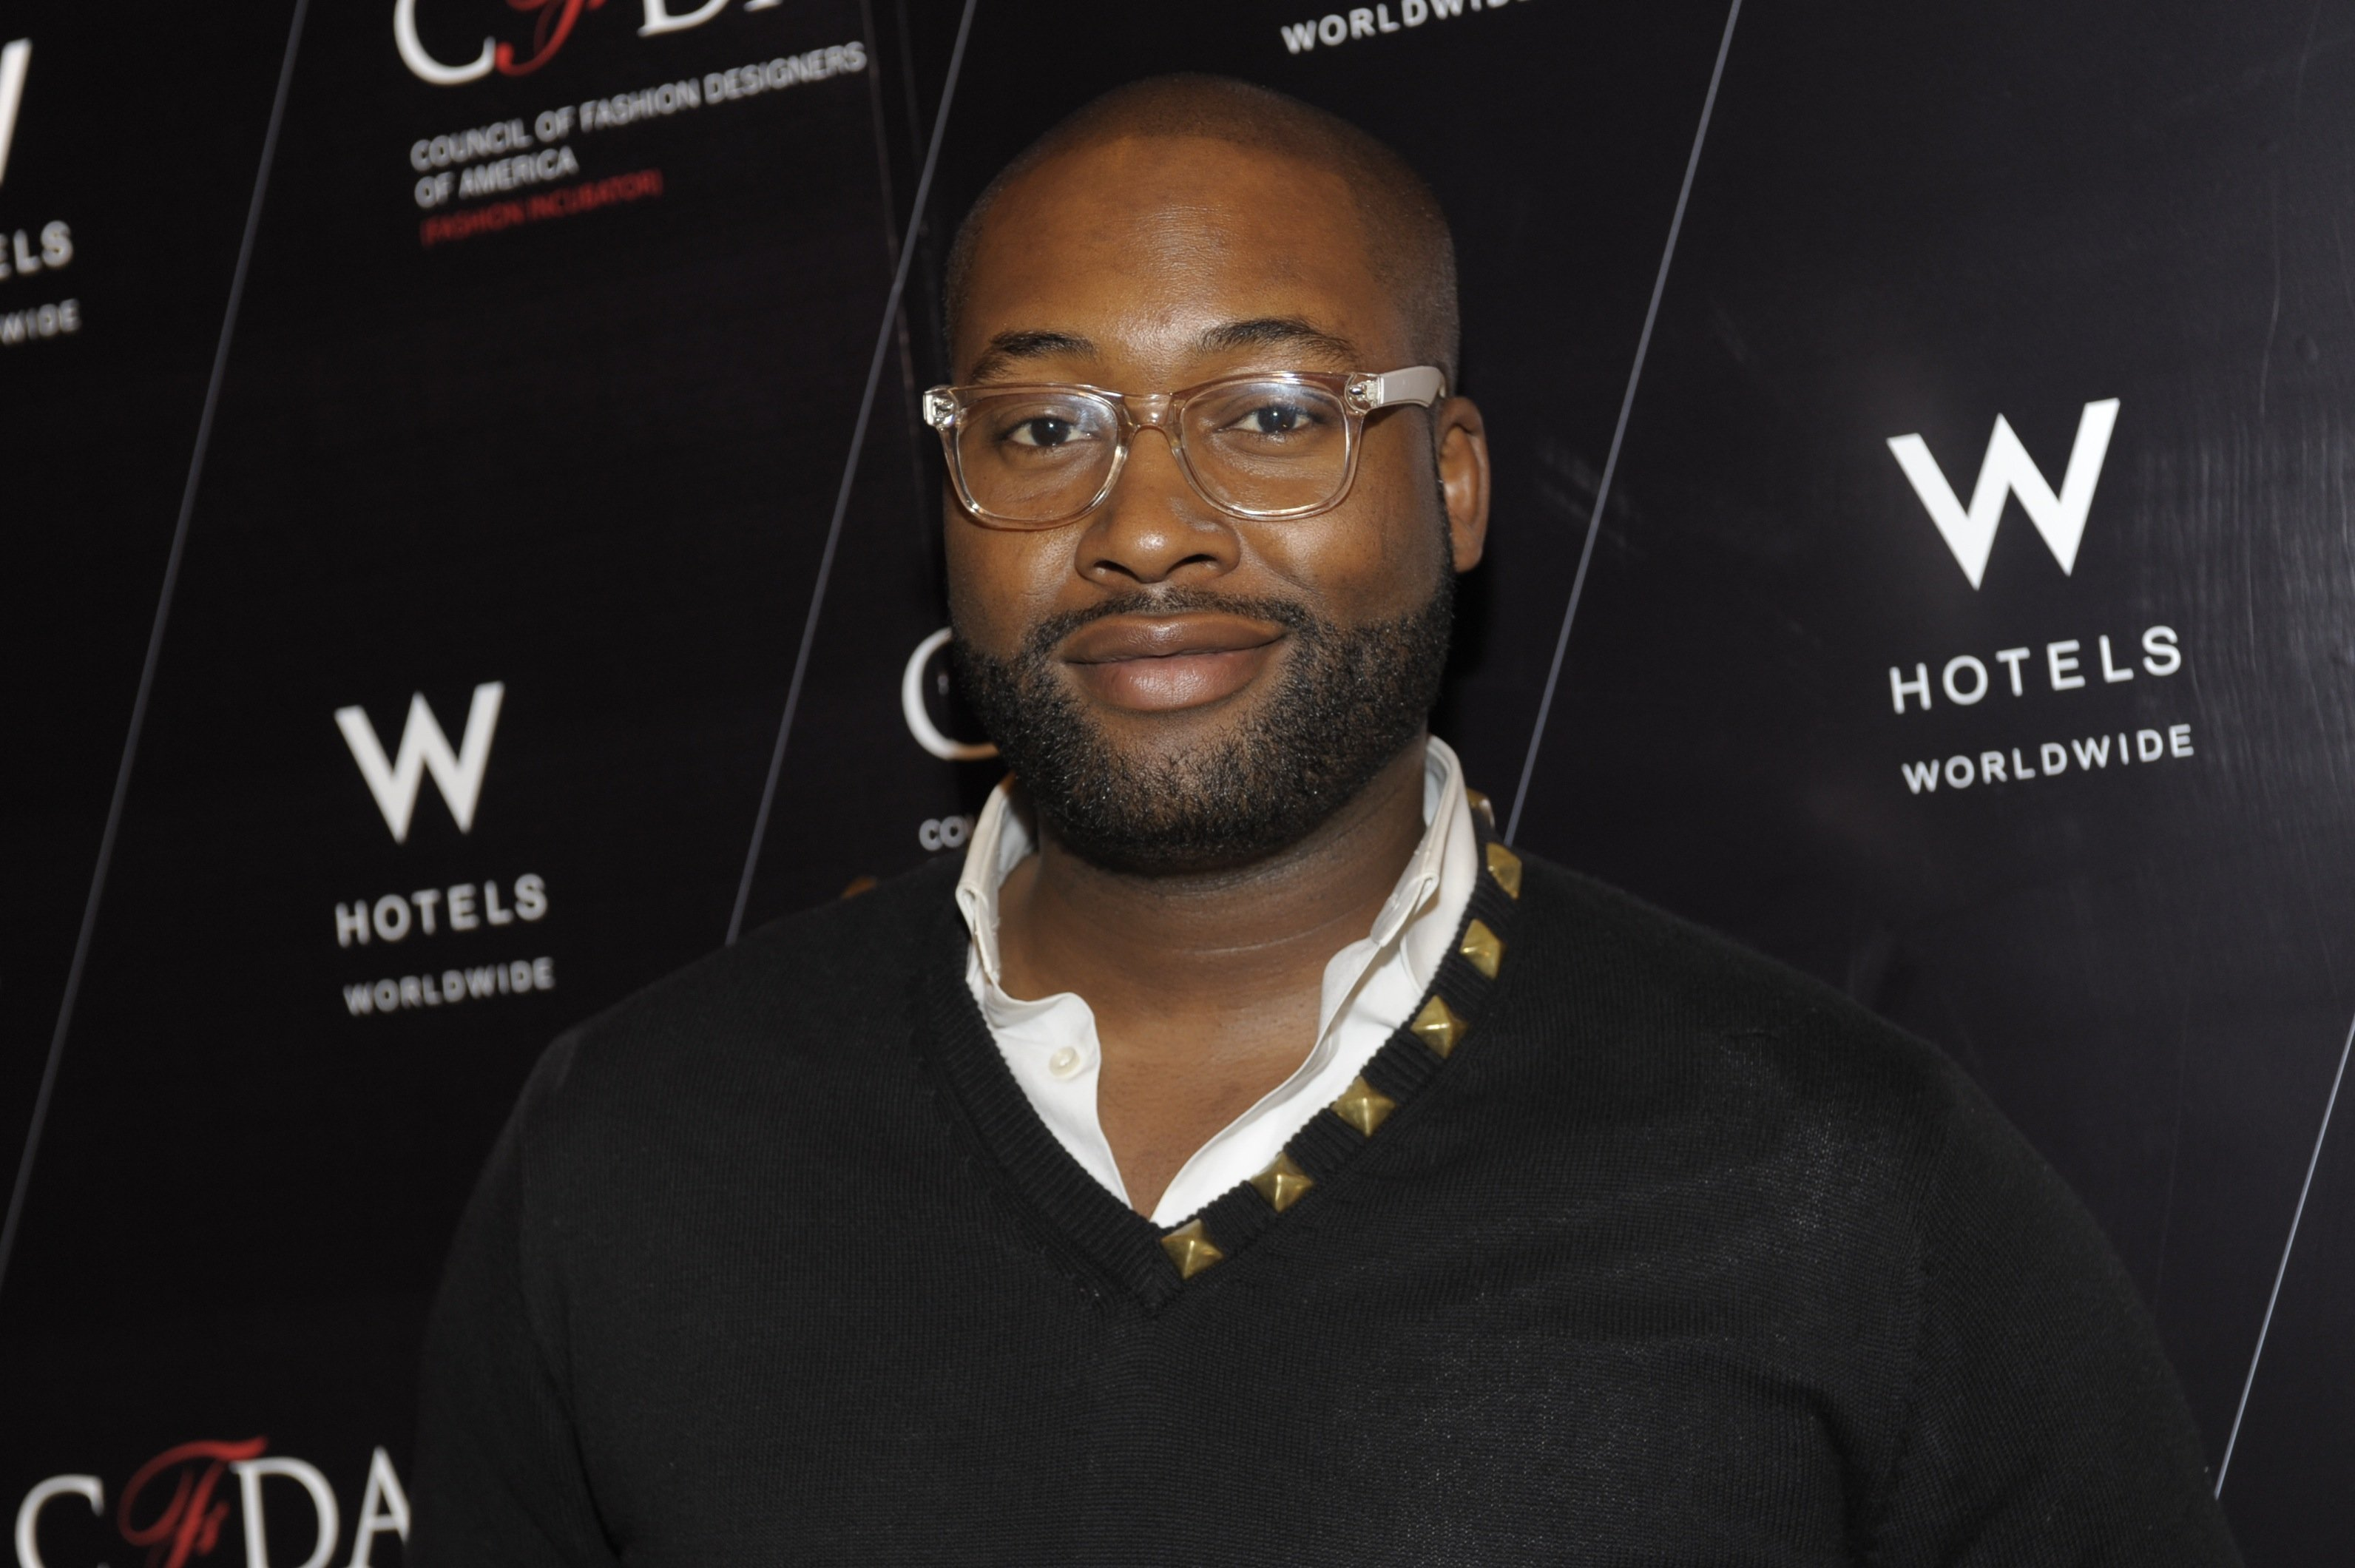 Mychael Knight Project Runway Fashion Designer Dies At 39